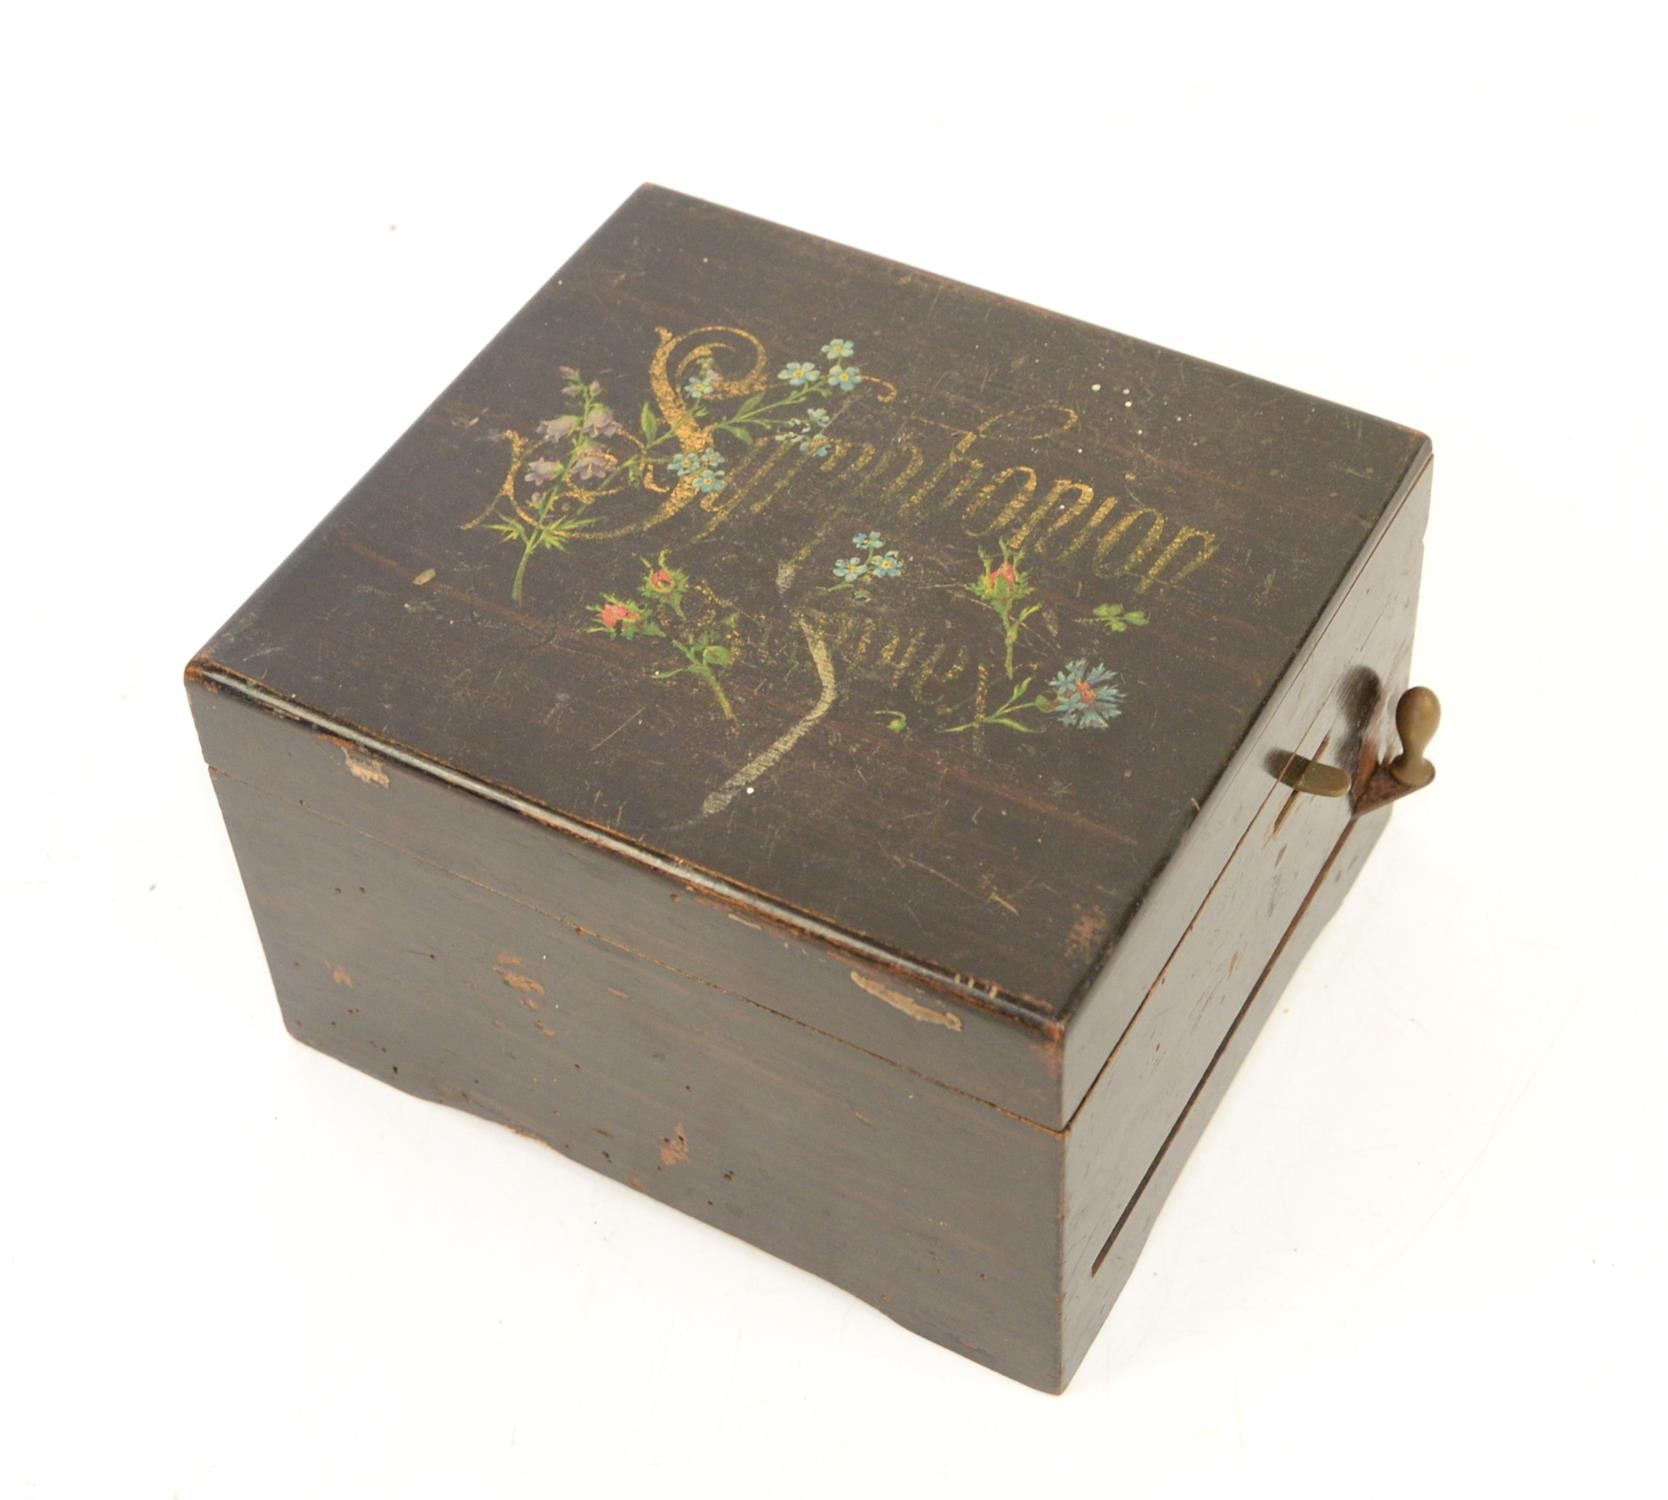 Late 19th century German Symphonion, with a single disc 14.5 cms, the box, 19.5 x 17 cms, - Image 2 of 2